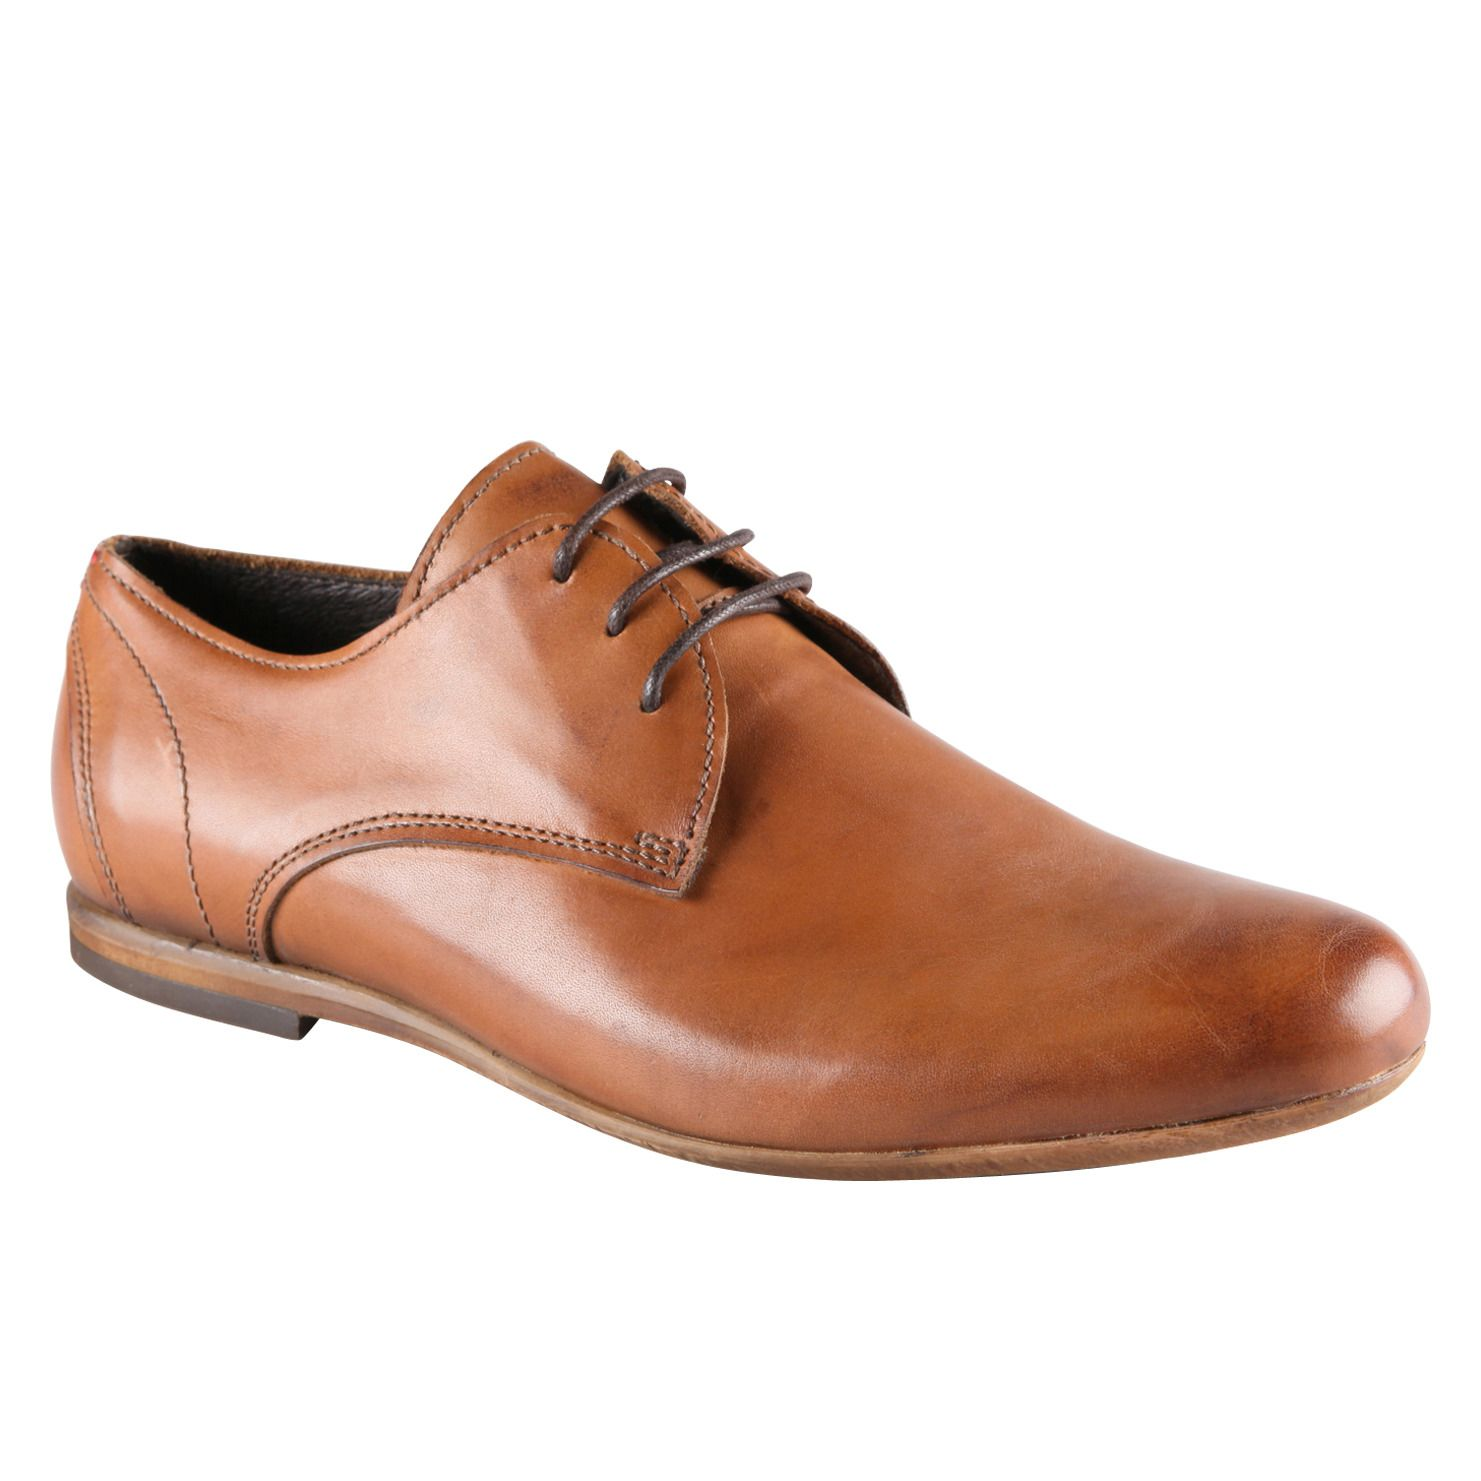 316ff5c9d00 OLVEIRA - men's dress lace-ups shoes for sale at ALDO Shoes ...